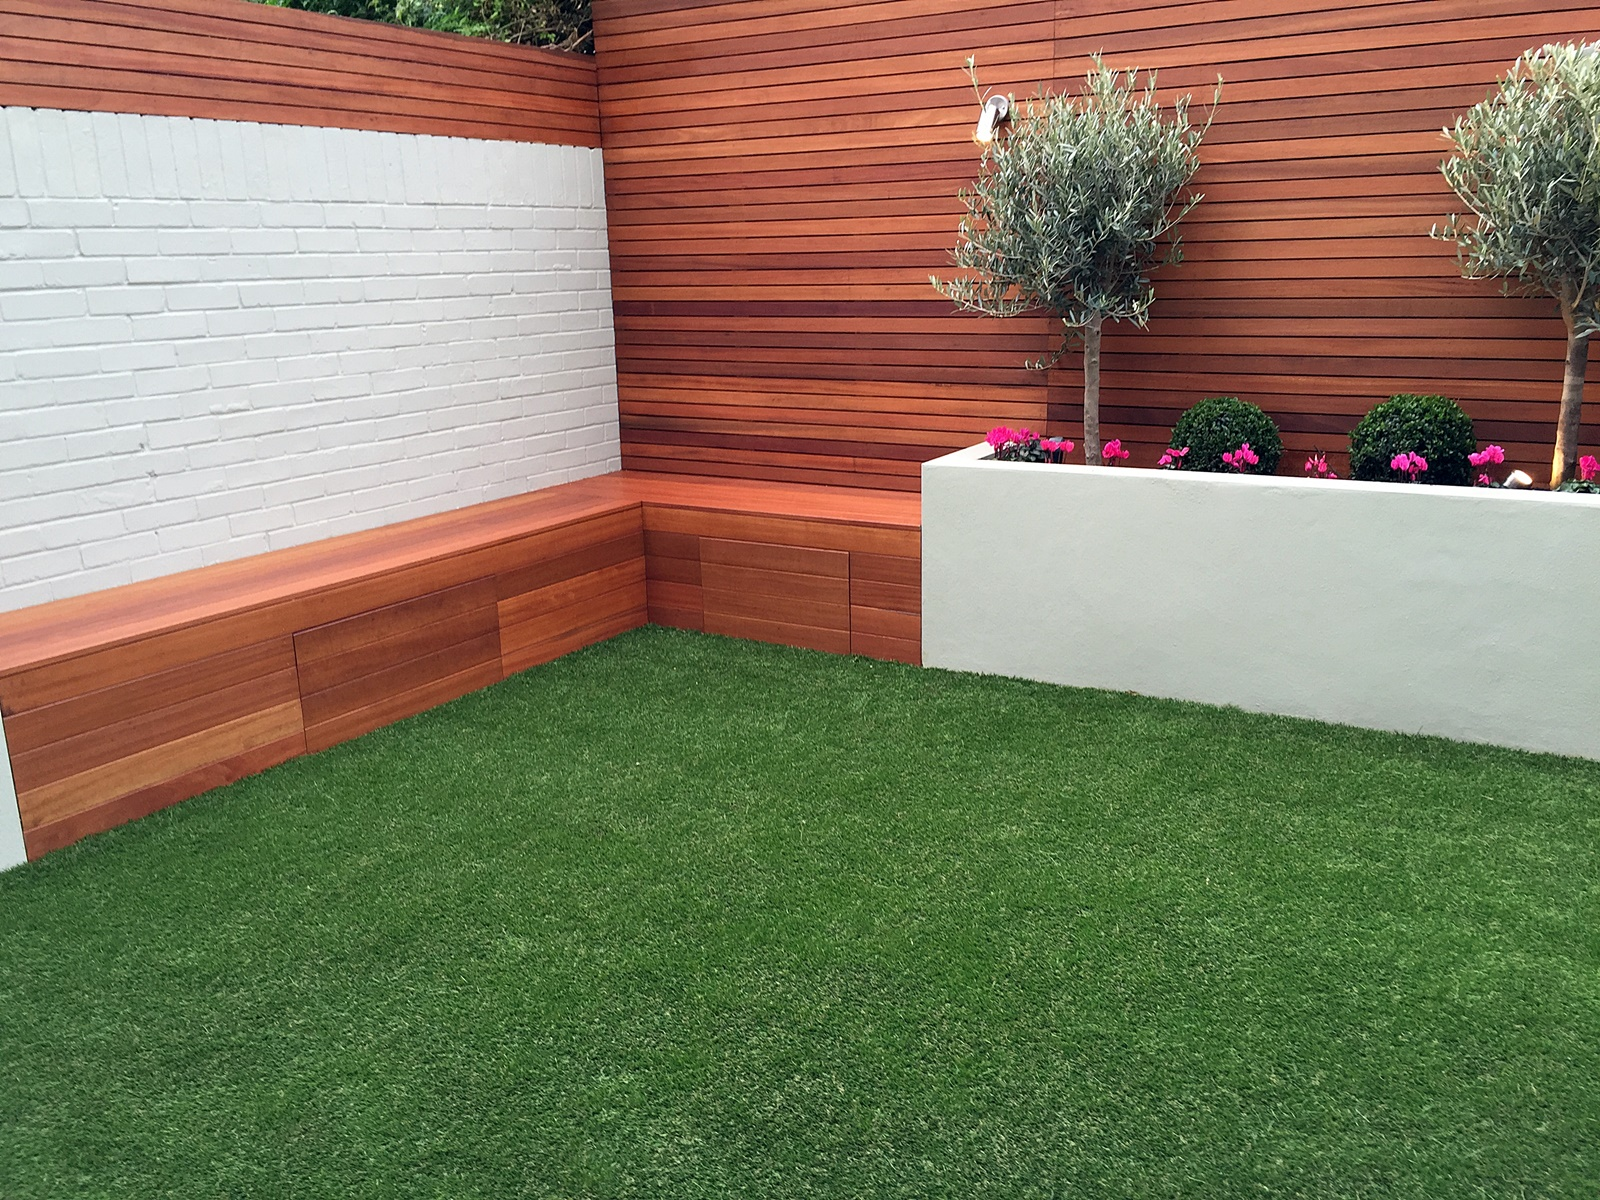 Simple modern court yard garden designer battersea fulham for Small garden design uk